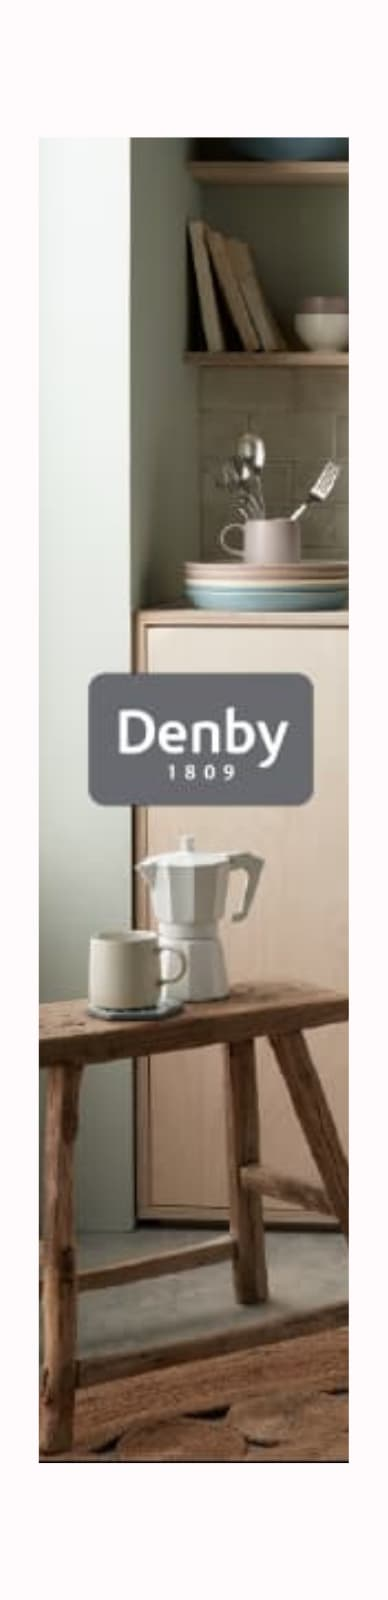 this is a denby banner ad